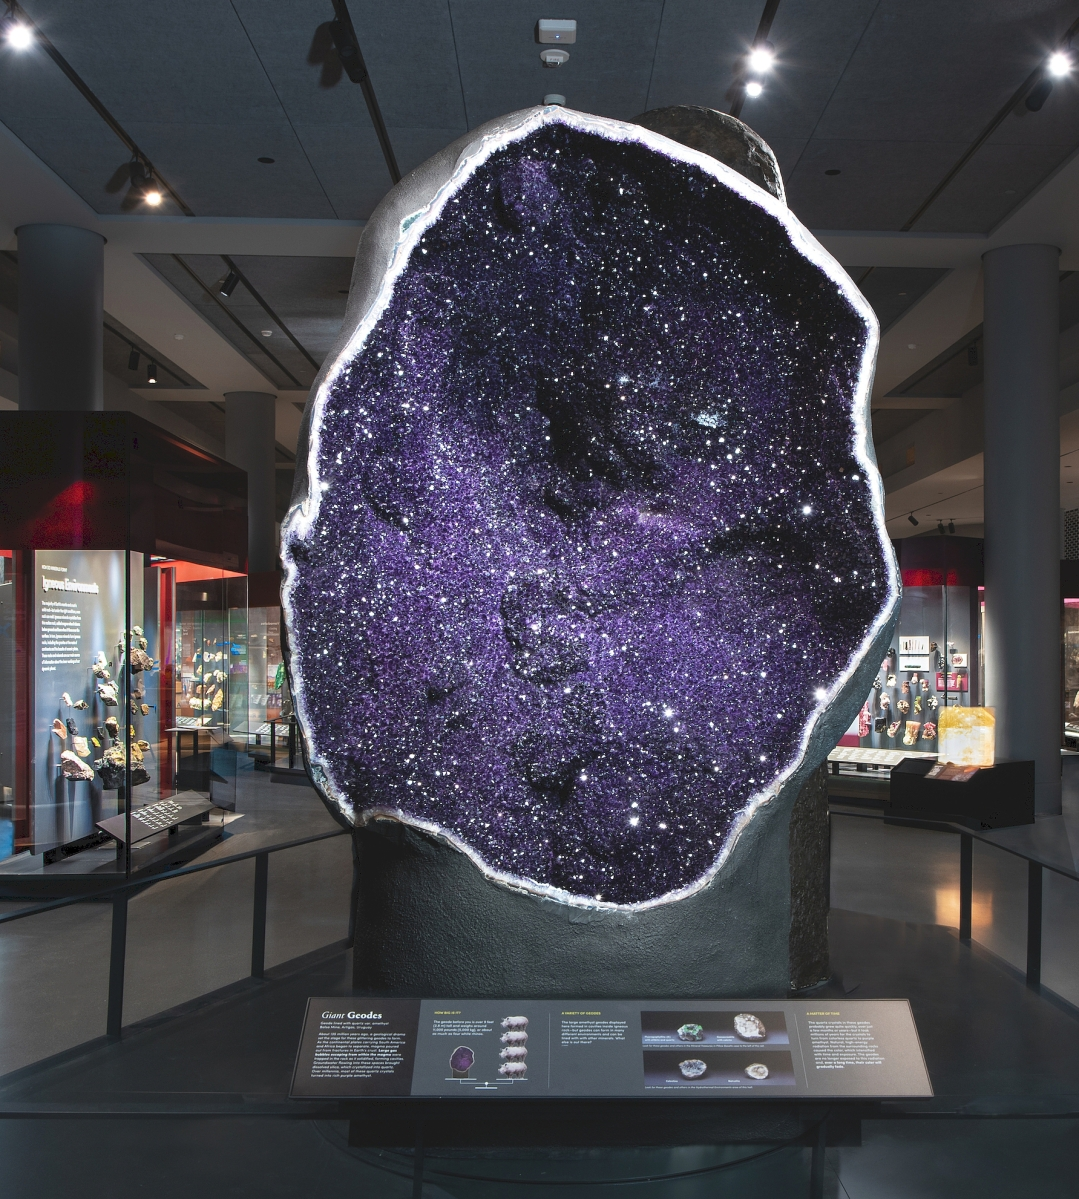 The entrance to the new galleries features a pair of towering amethyst geodes that are among the world's largest on display. The amethyst geode pictured here stands 9 feet tall, weighs around 12,000 pounds (5,440 kg), or about as much as four black rhinos, and was collected from the Bolsa Mine in Uruguay. D. Finnin/©AMNH.